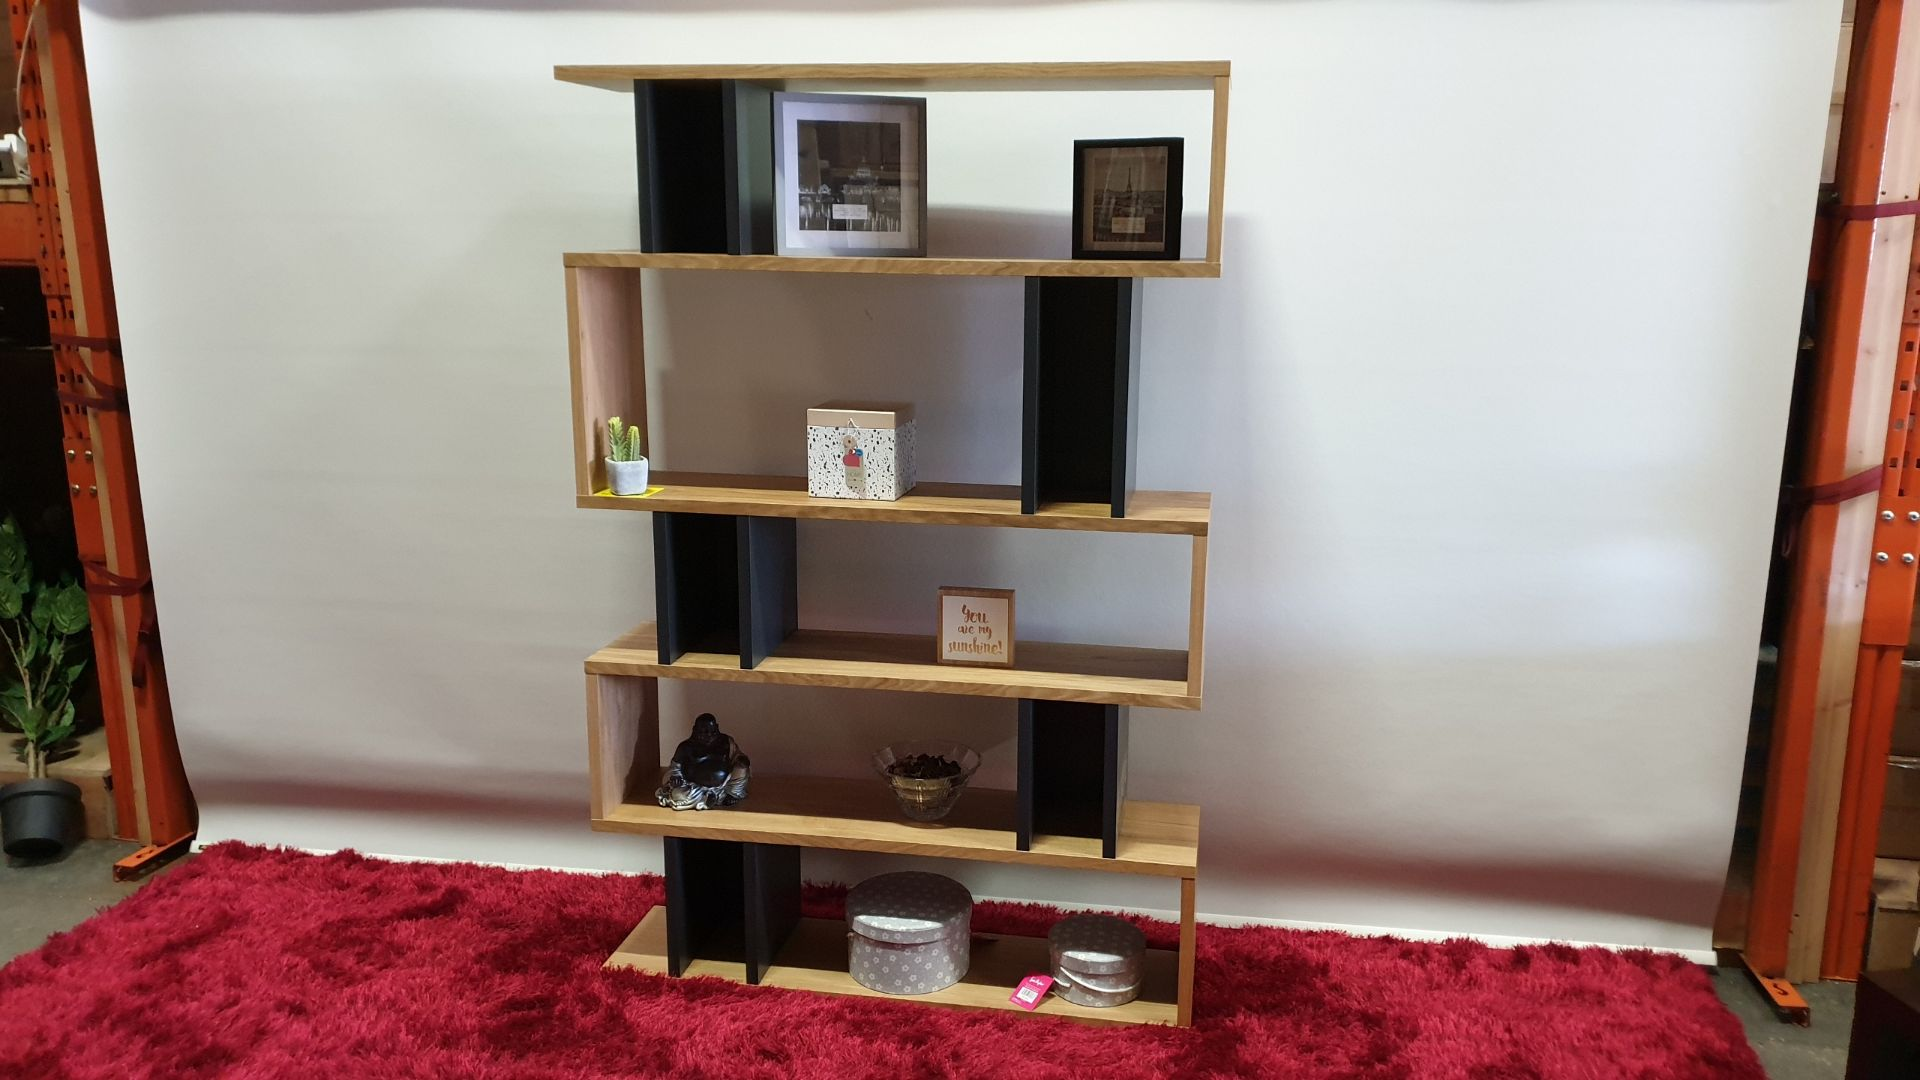 Lot 233 - BRAND NEW CONTENT BY TERRANCE CONRAN BALANCE TALL SHELVING COLOUR OAK / CHARCOAL SIZE H1800 X